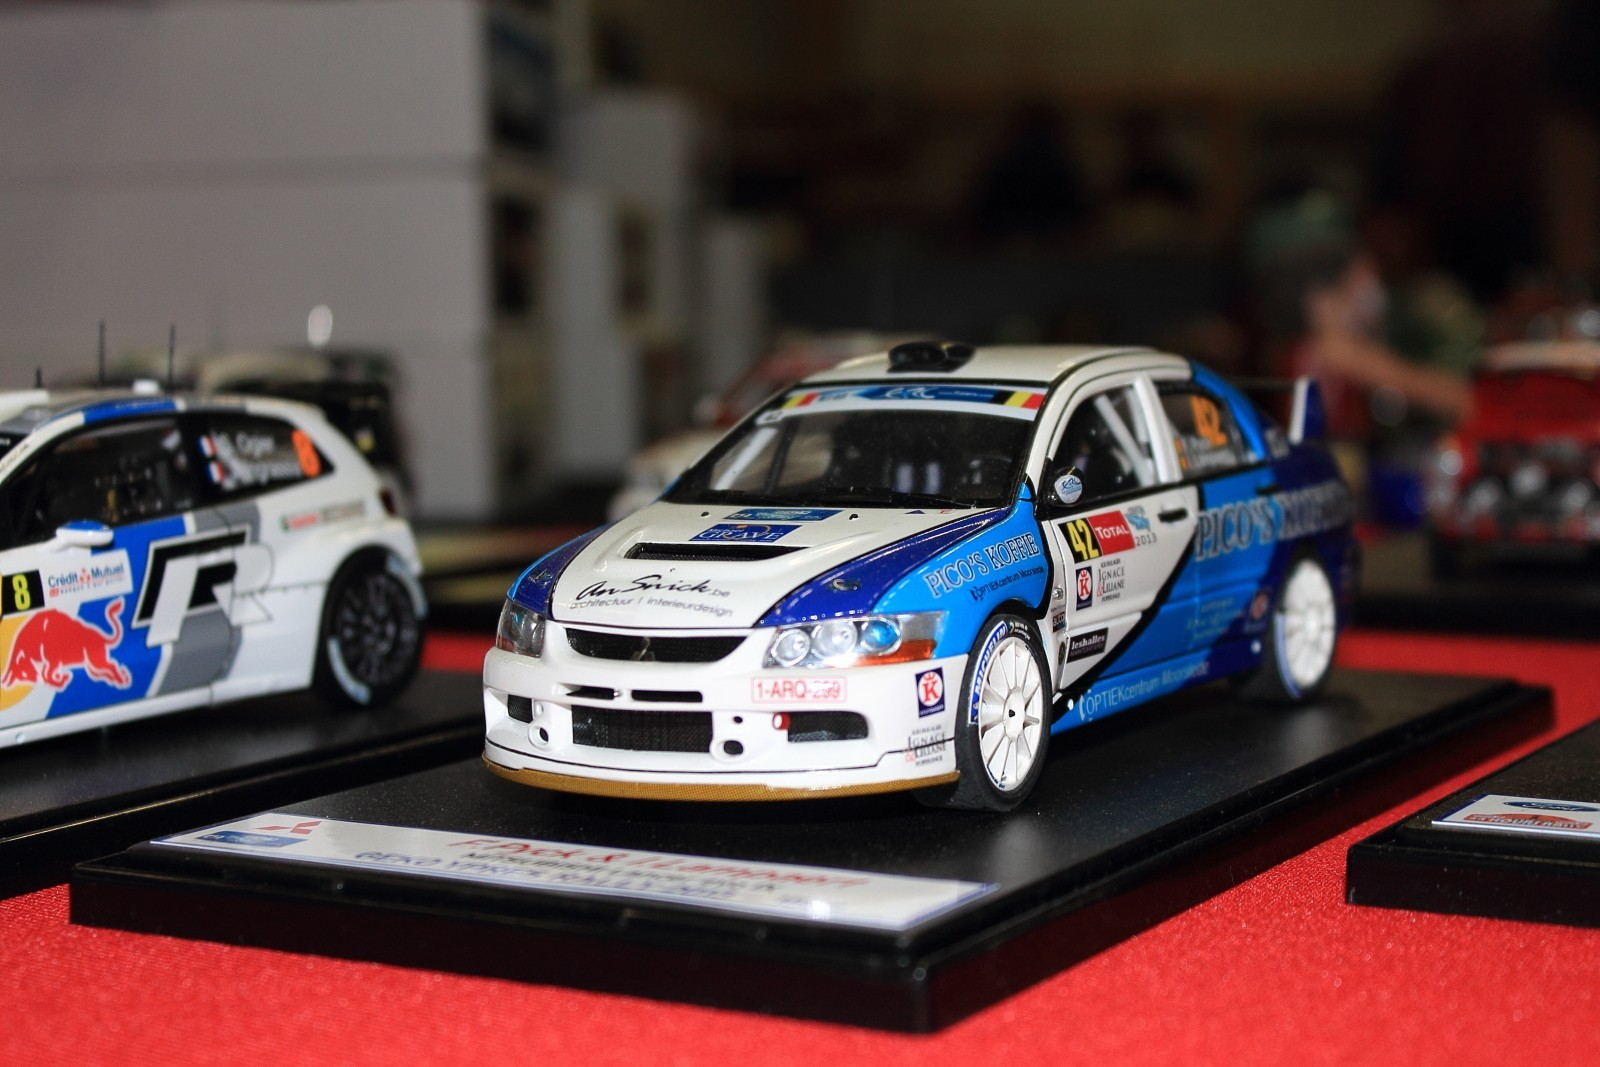 Une Lancer Evo Groupe N. Pas courant comme montage.